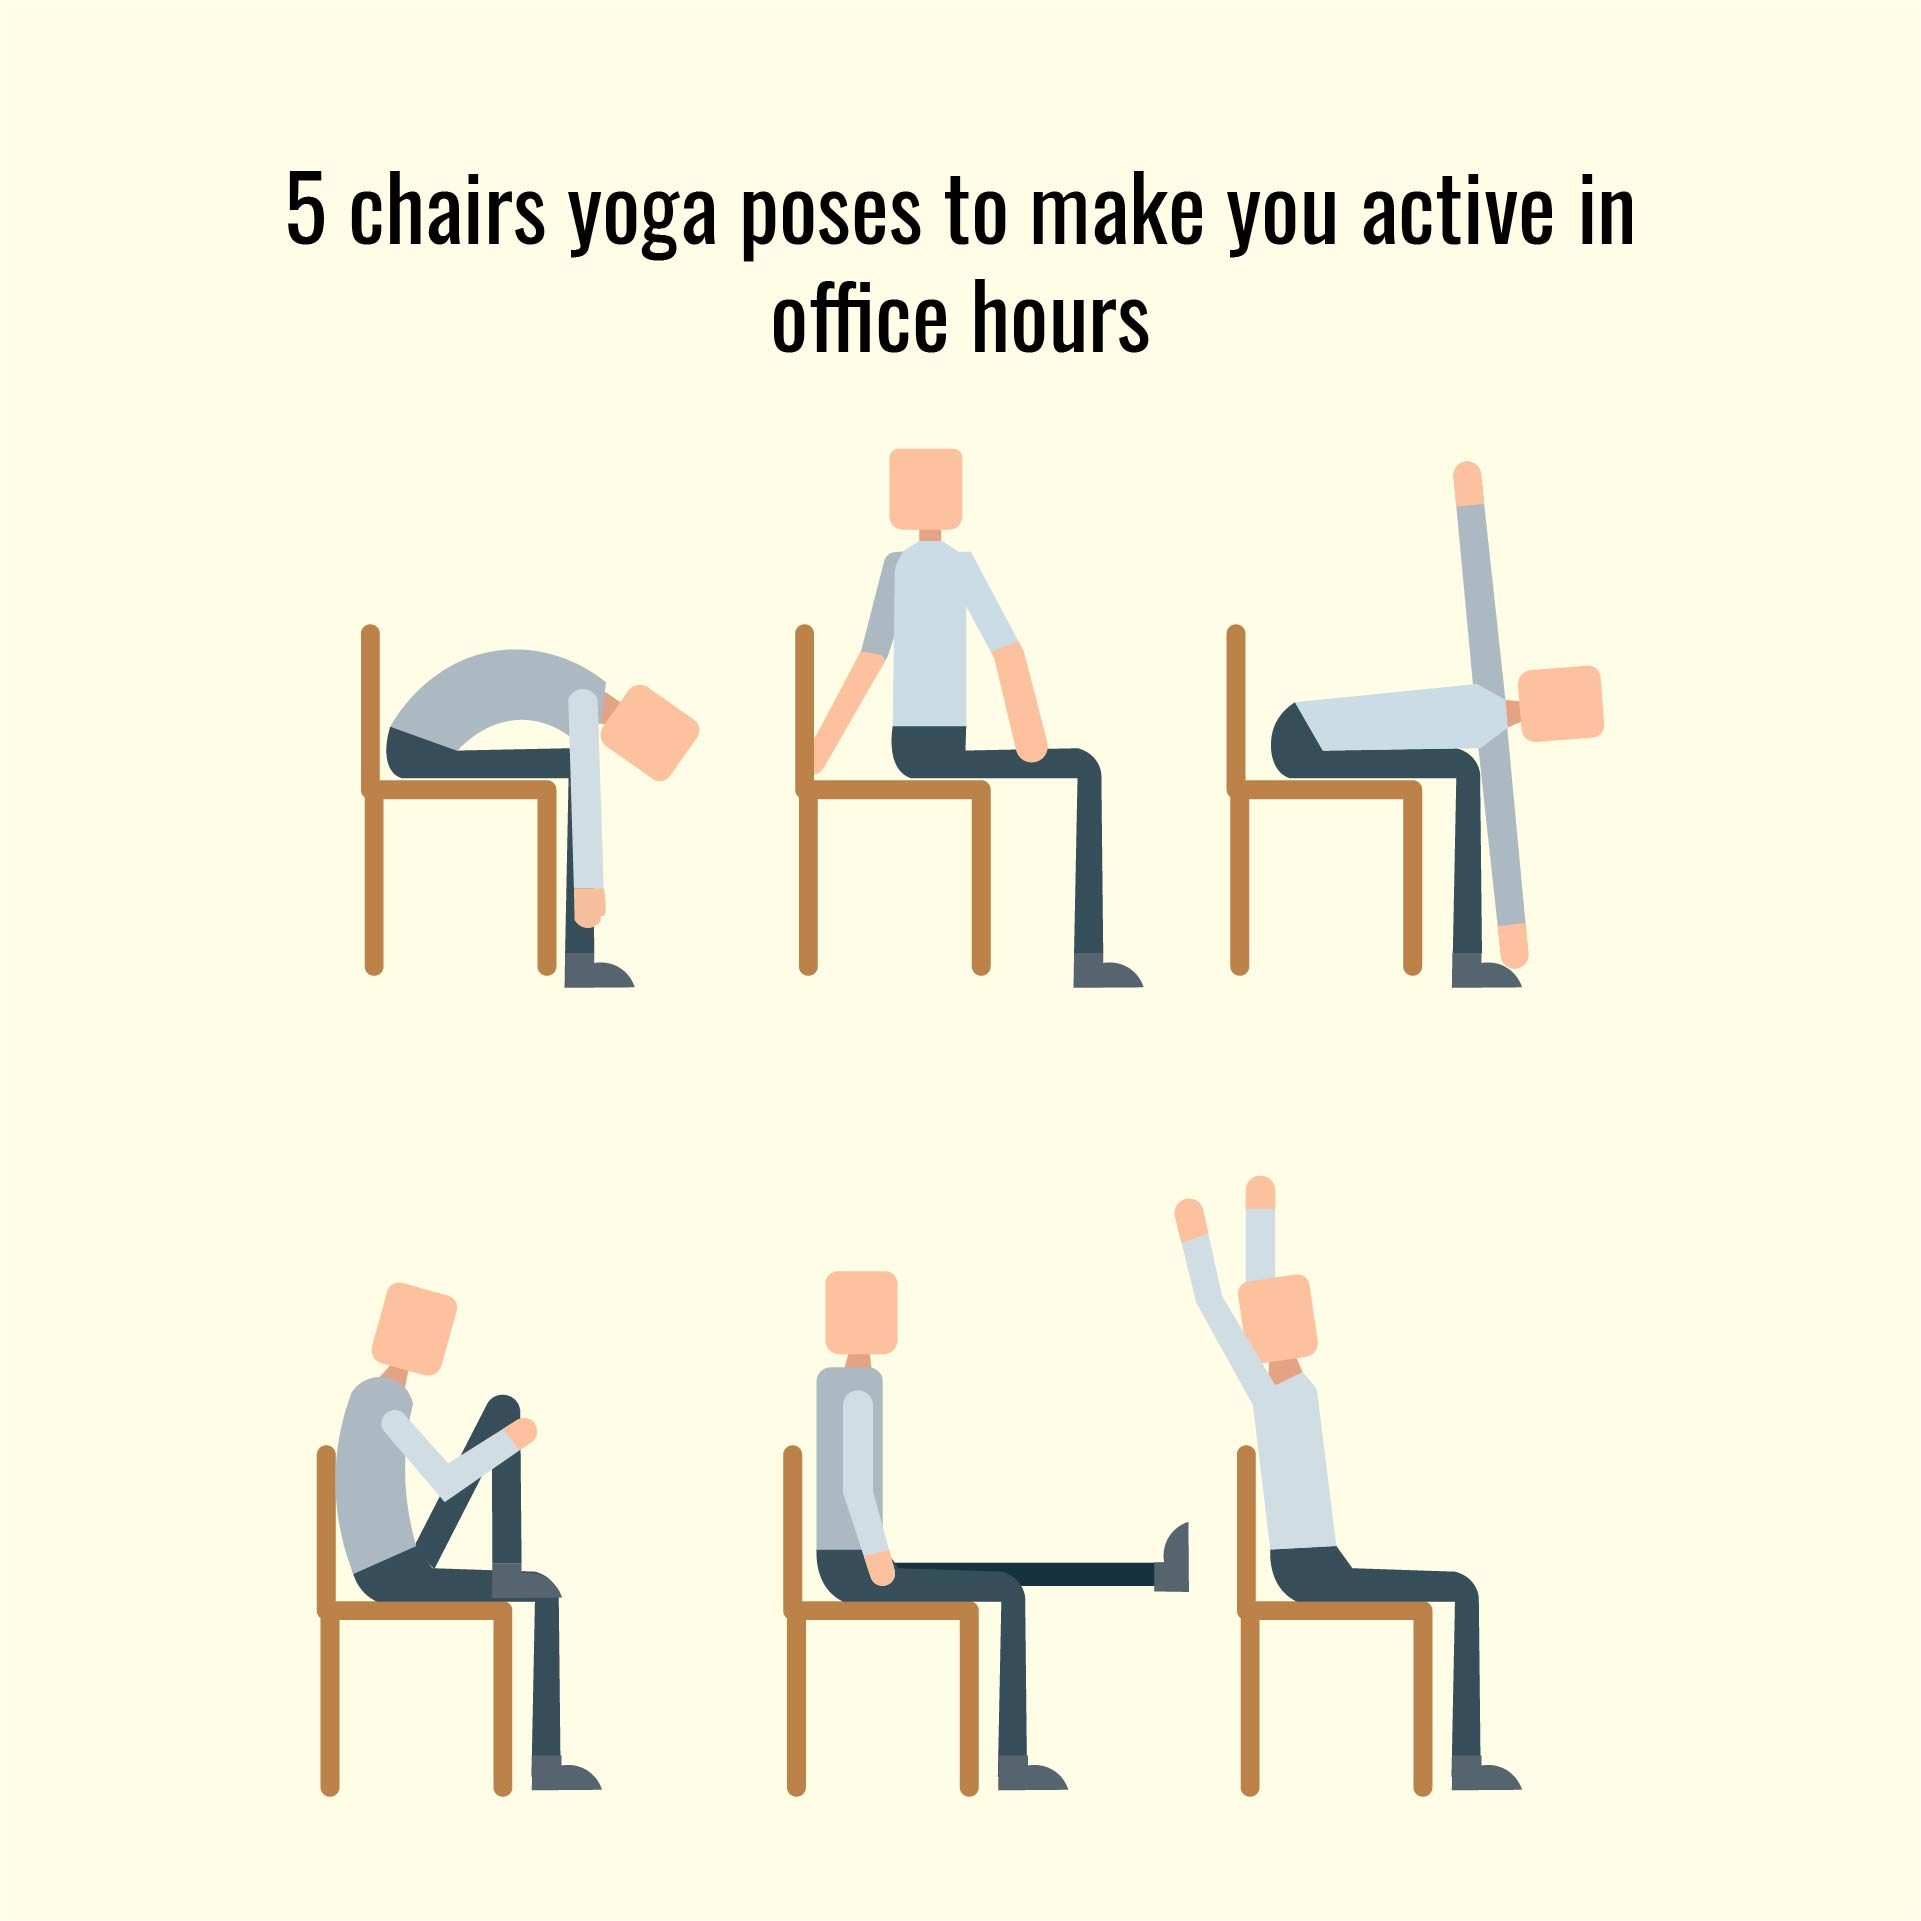 9 Best Images Of Printable Chair Exercises For Seniors Senior Chair Yoga Exercises Printable Chair Yoga Poses And Best Chair Exercises For Seniors Printablee Com